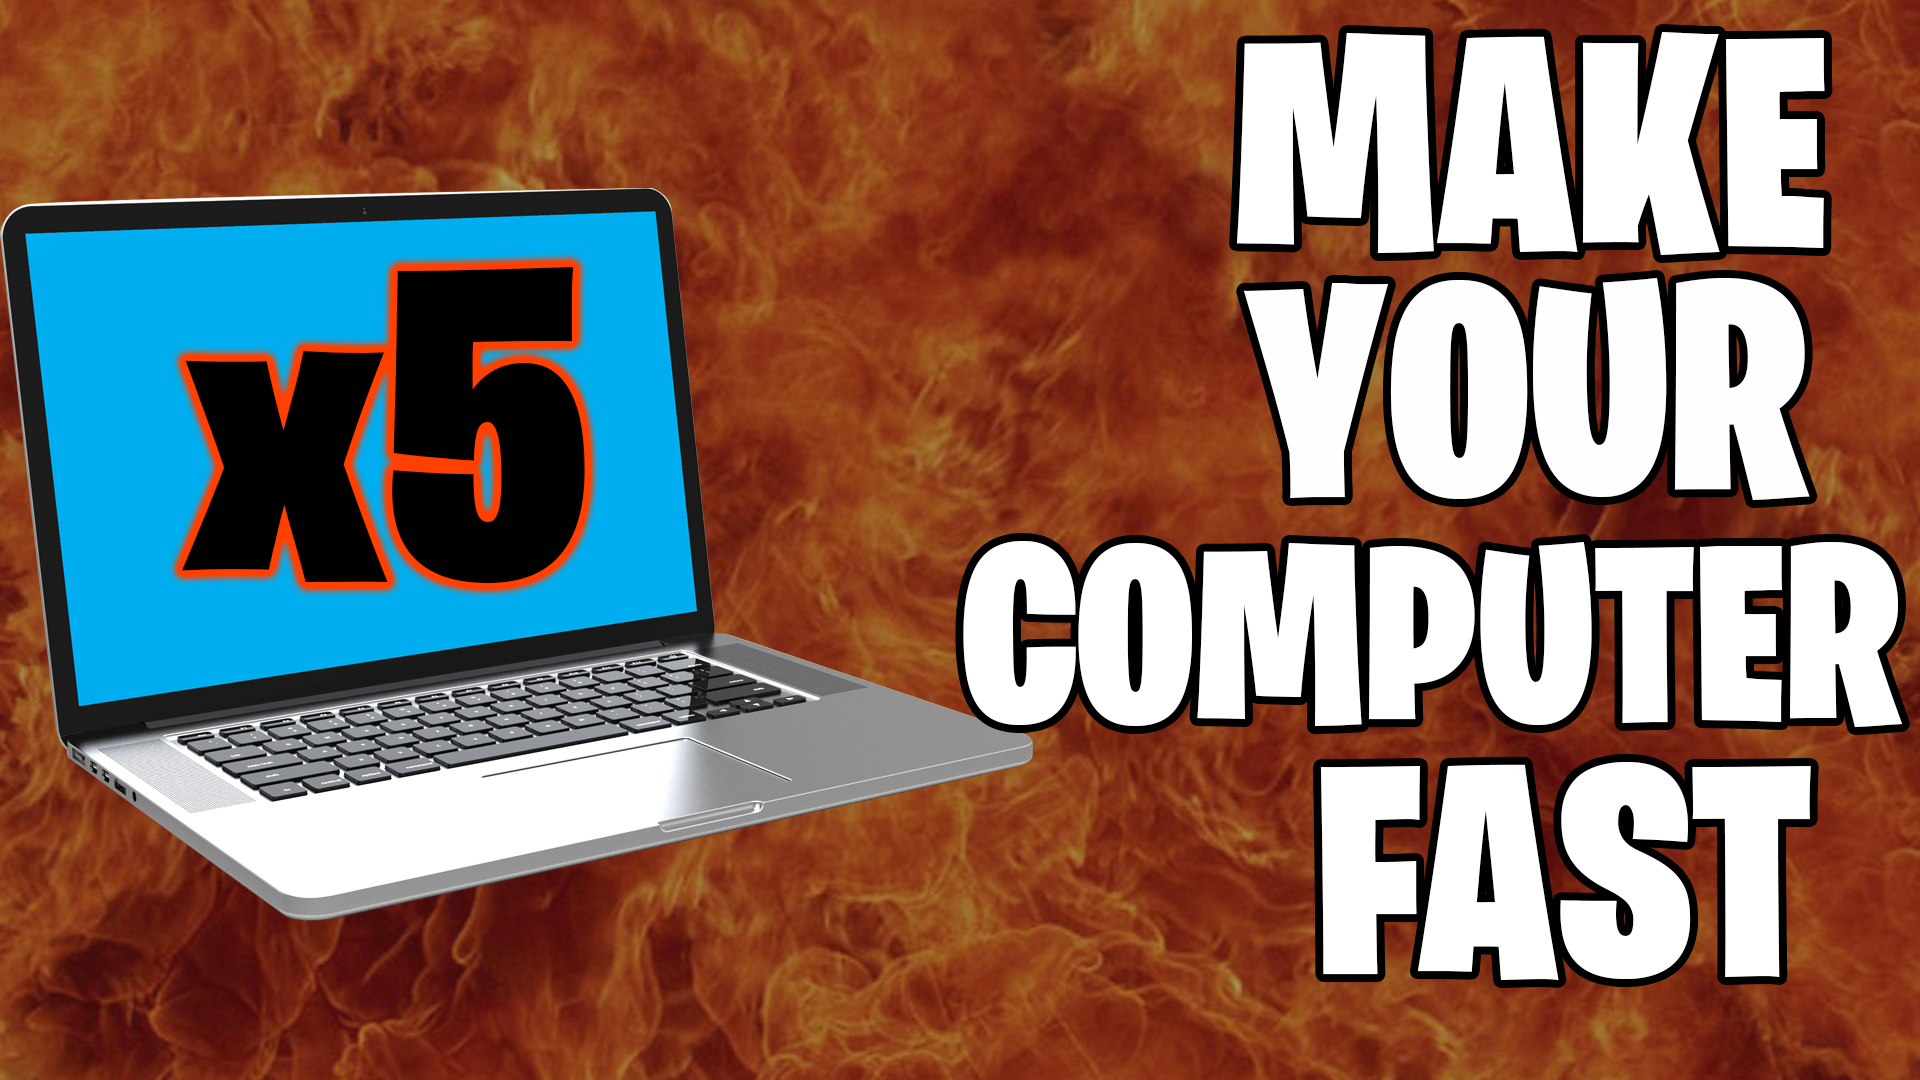 make your computer fast